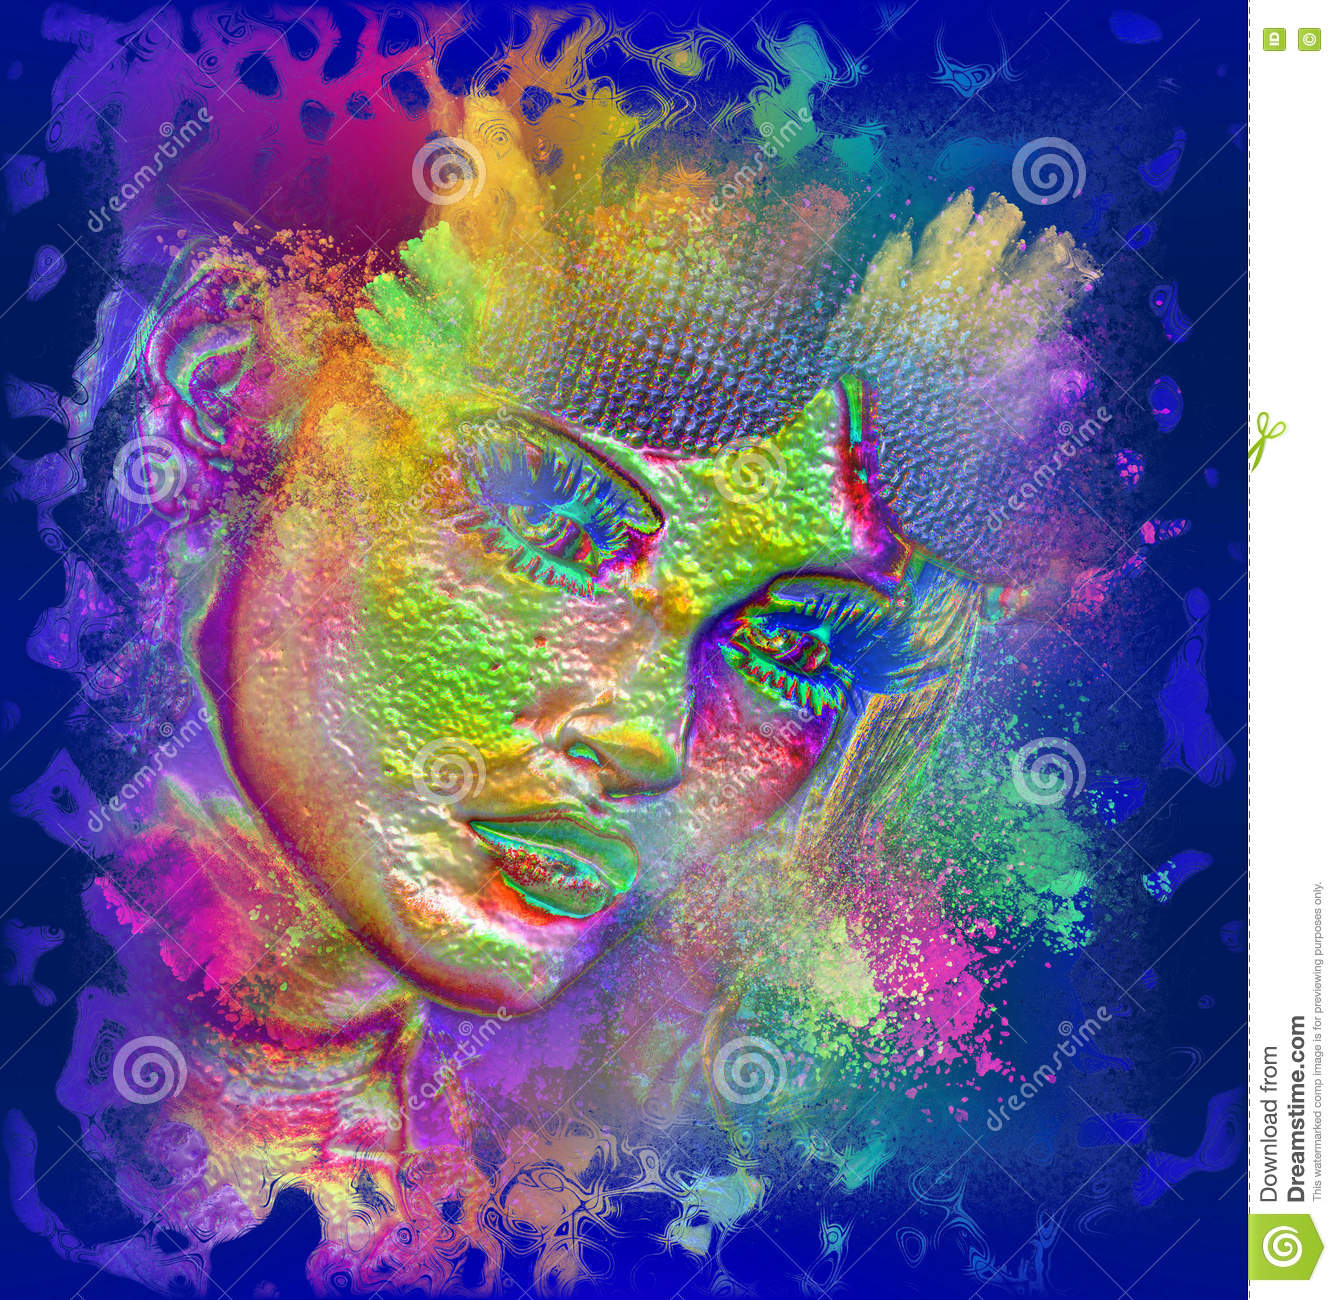 Modern digital art image of a woman s face, close up with colorful abstract background